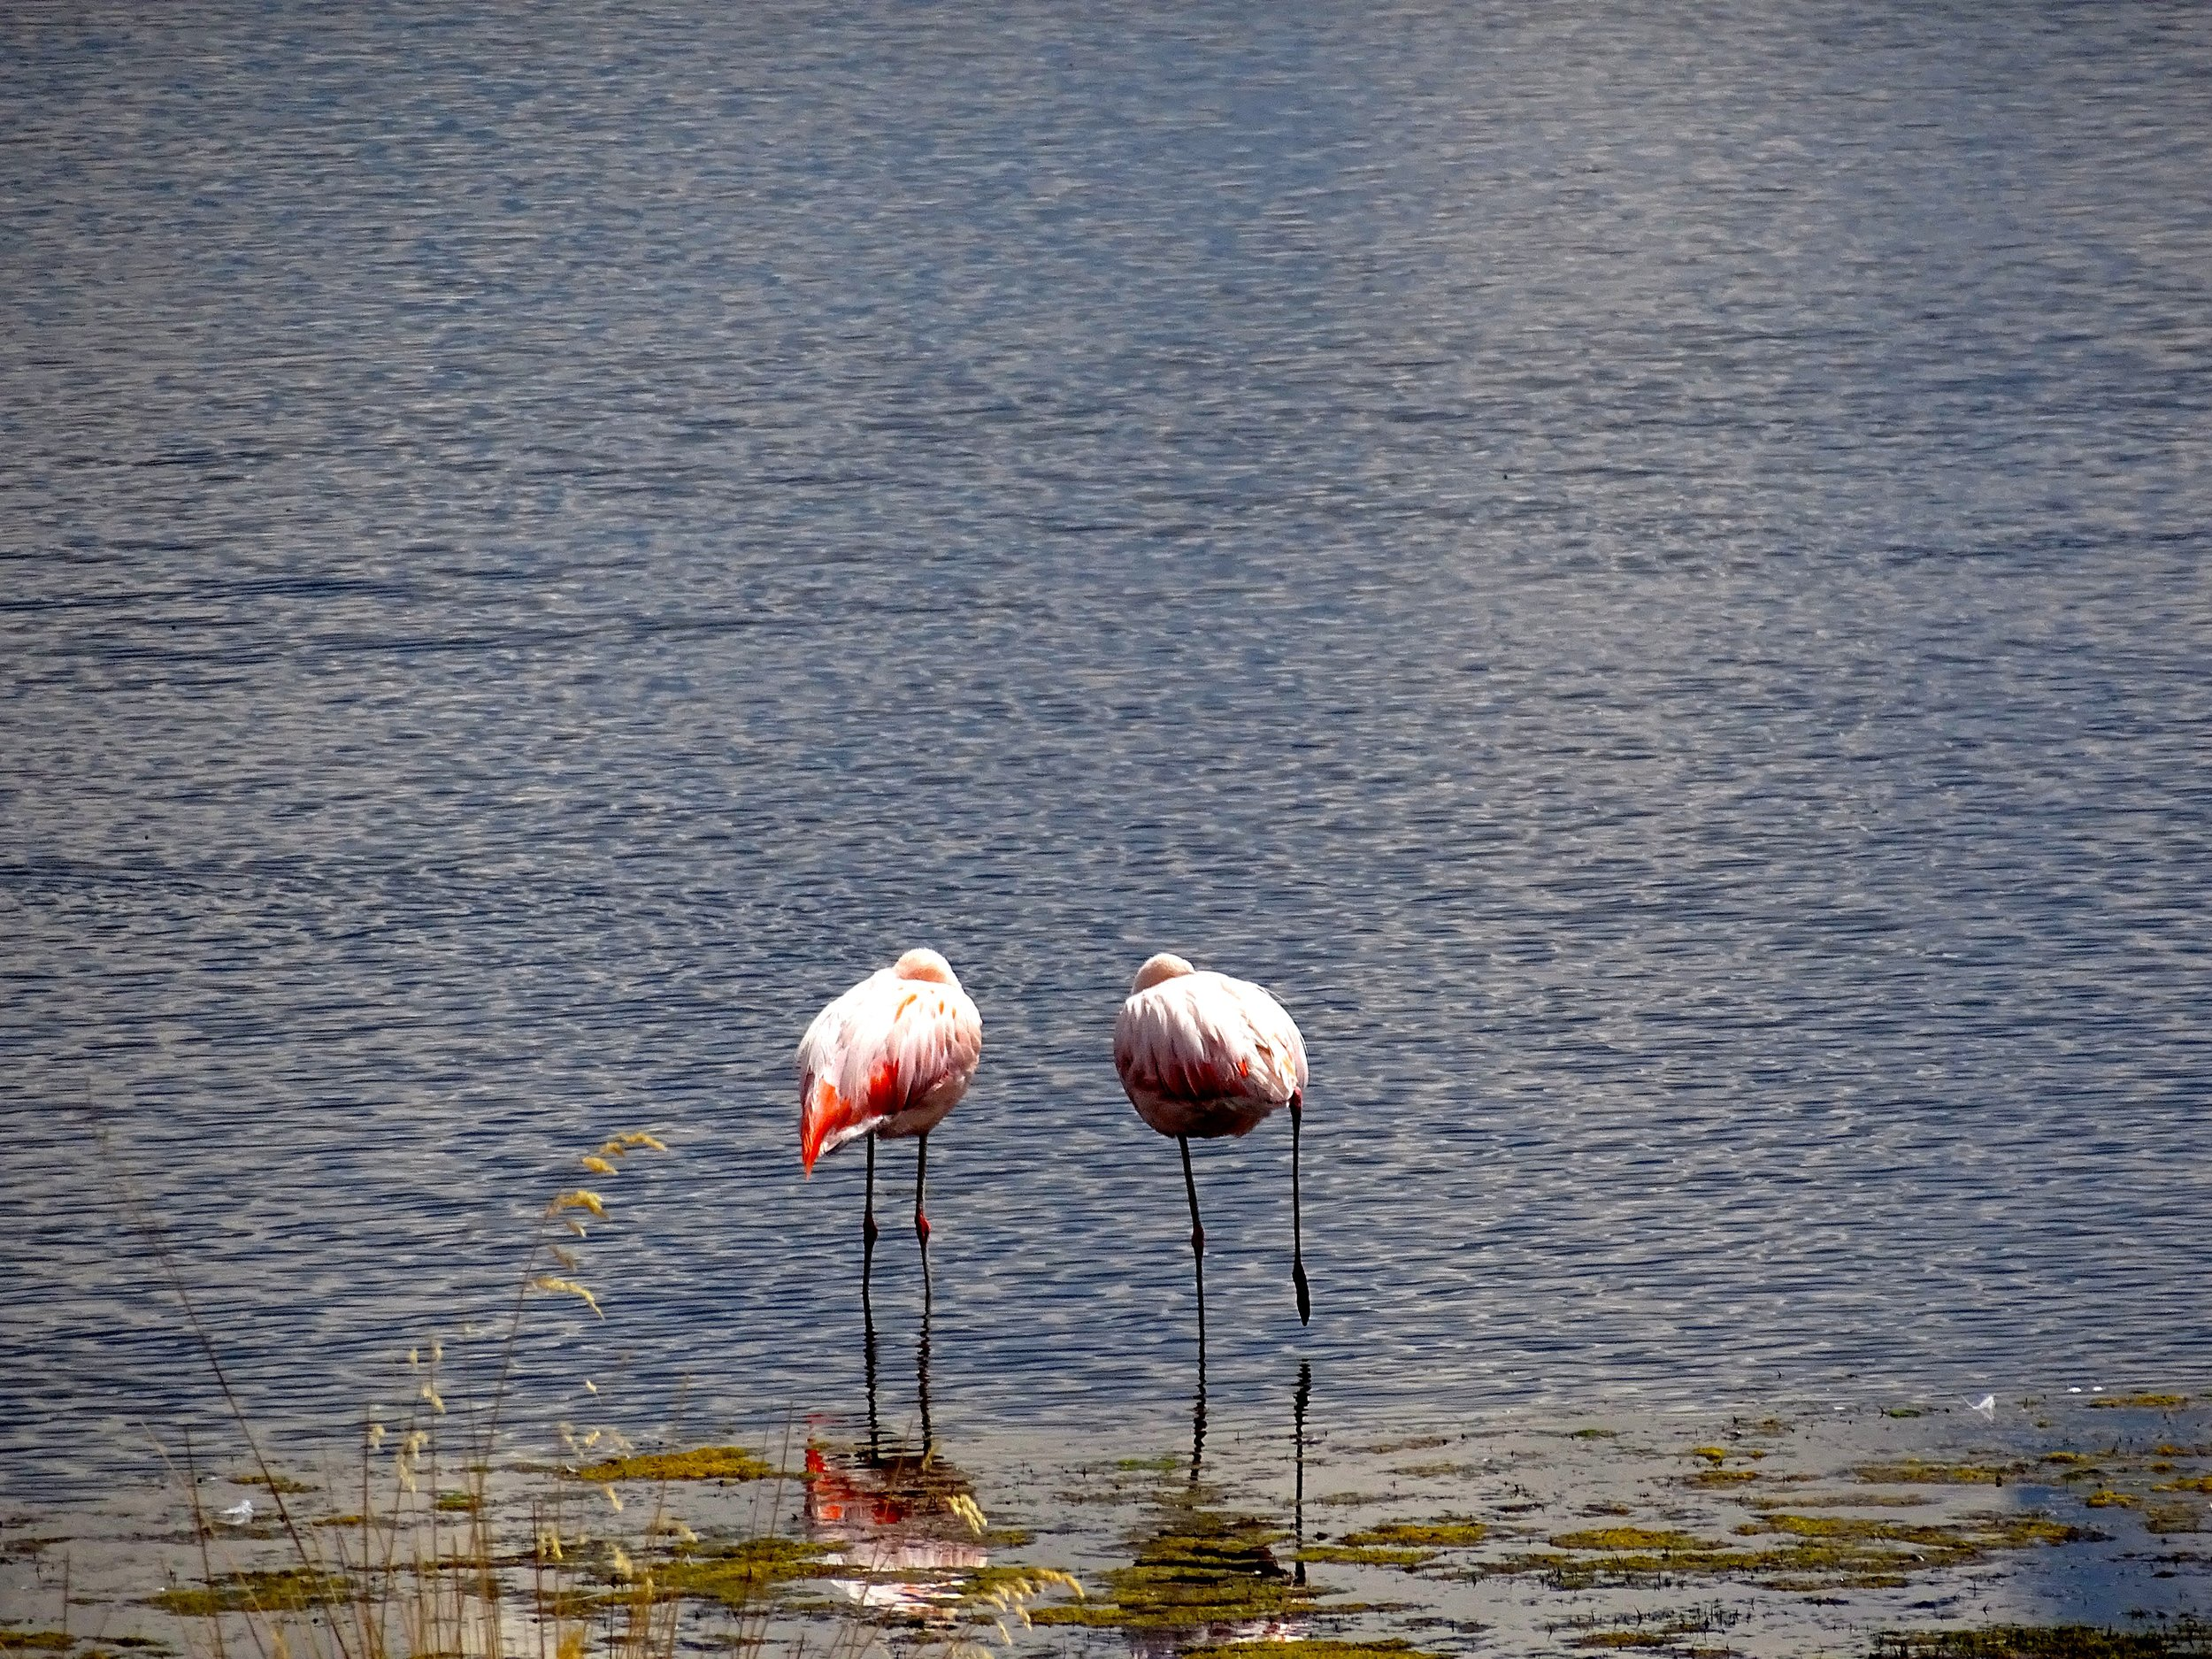 Pink flamingos at 4,000 meters and near freezing temps.  Who knew?